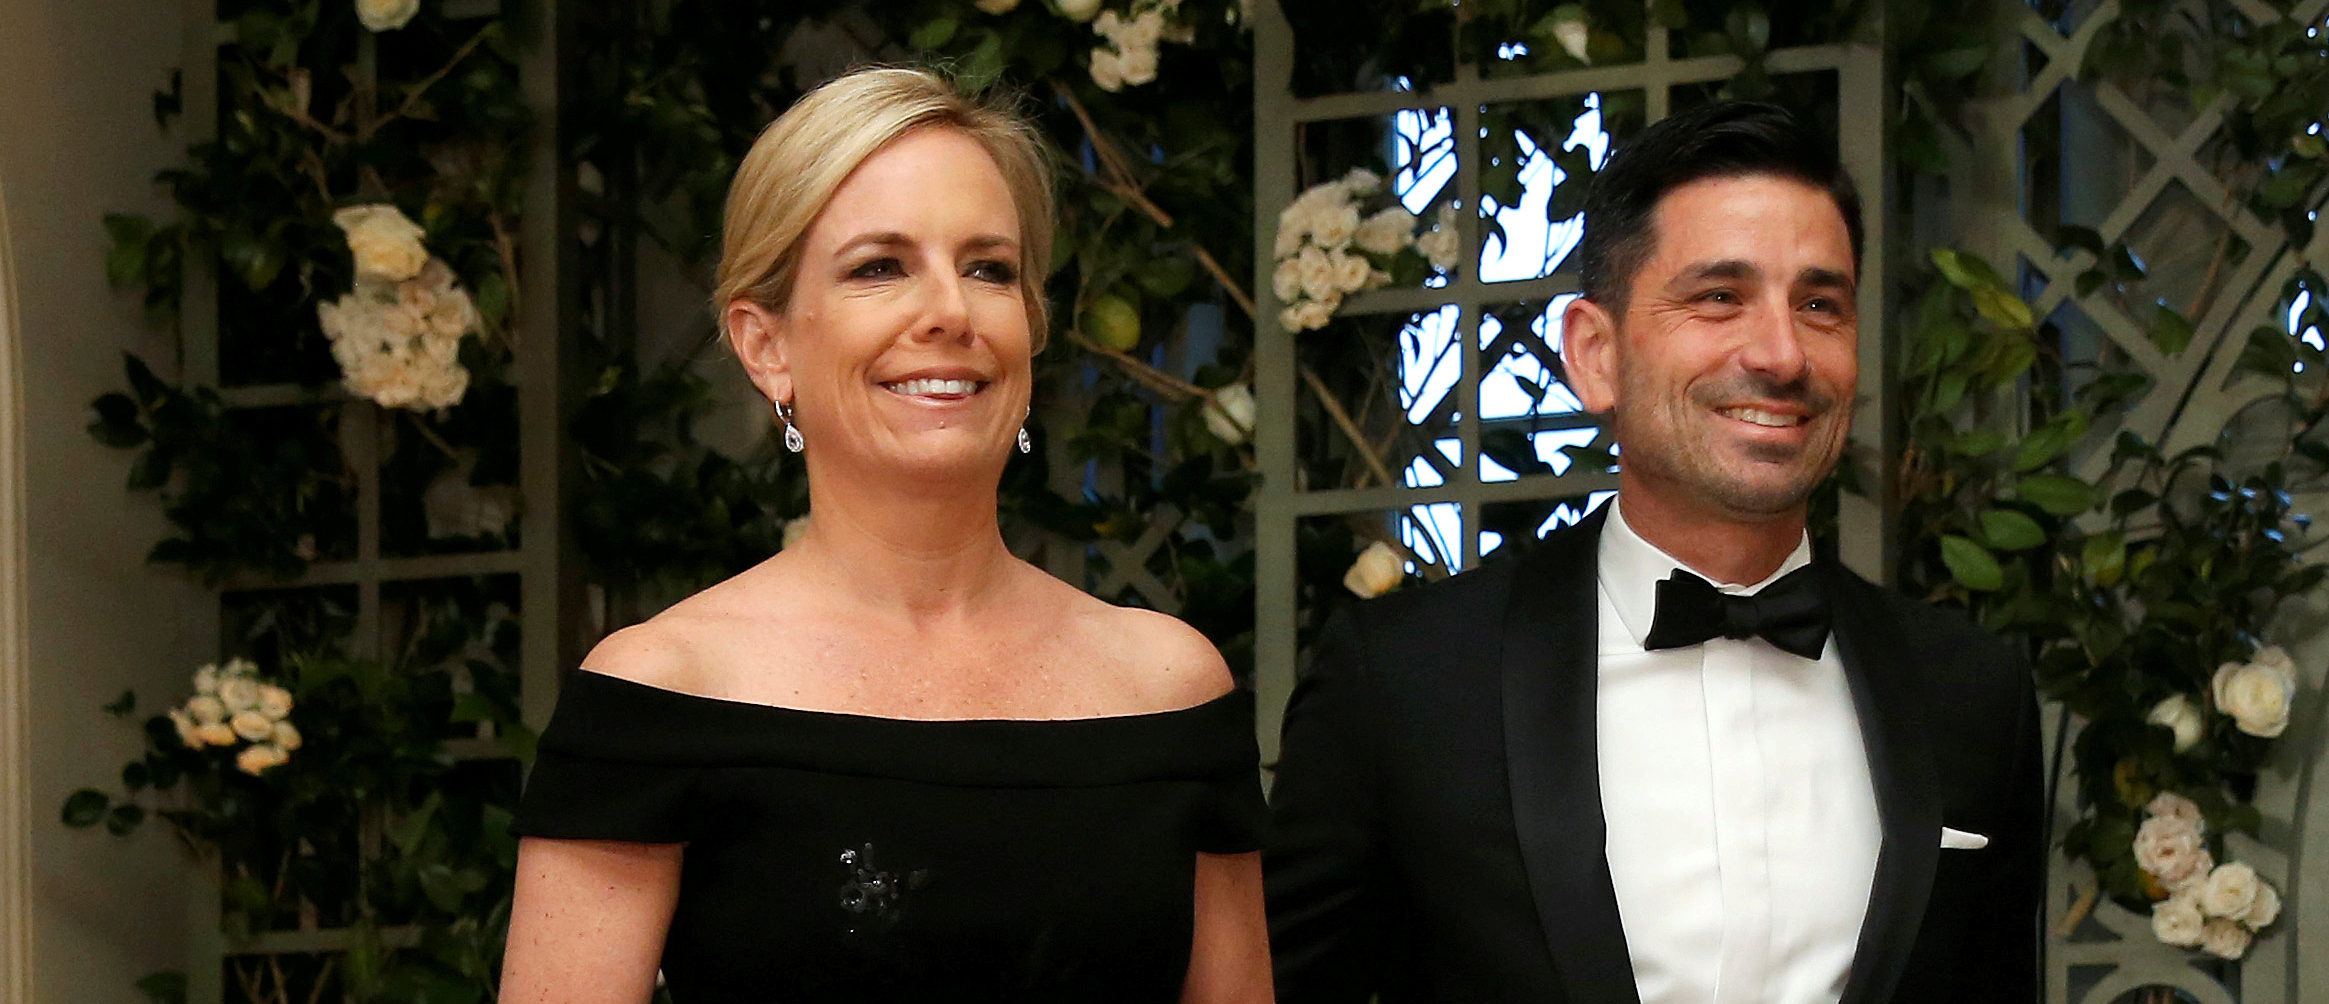 FILE PHOTO: U.S. Secretary of Homeland Security Kirstjen Nielsen and Chad Wolf arrive for the State Dinner in honor of French President Emmanuel Macron at the White House in Washington